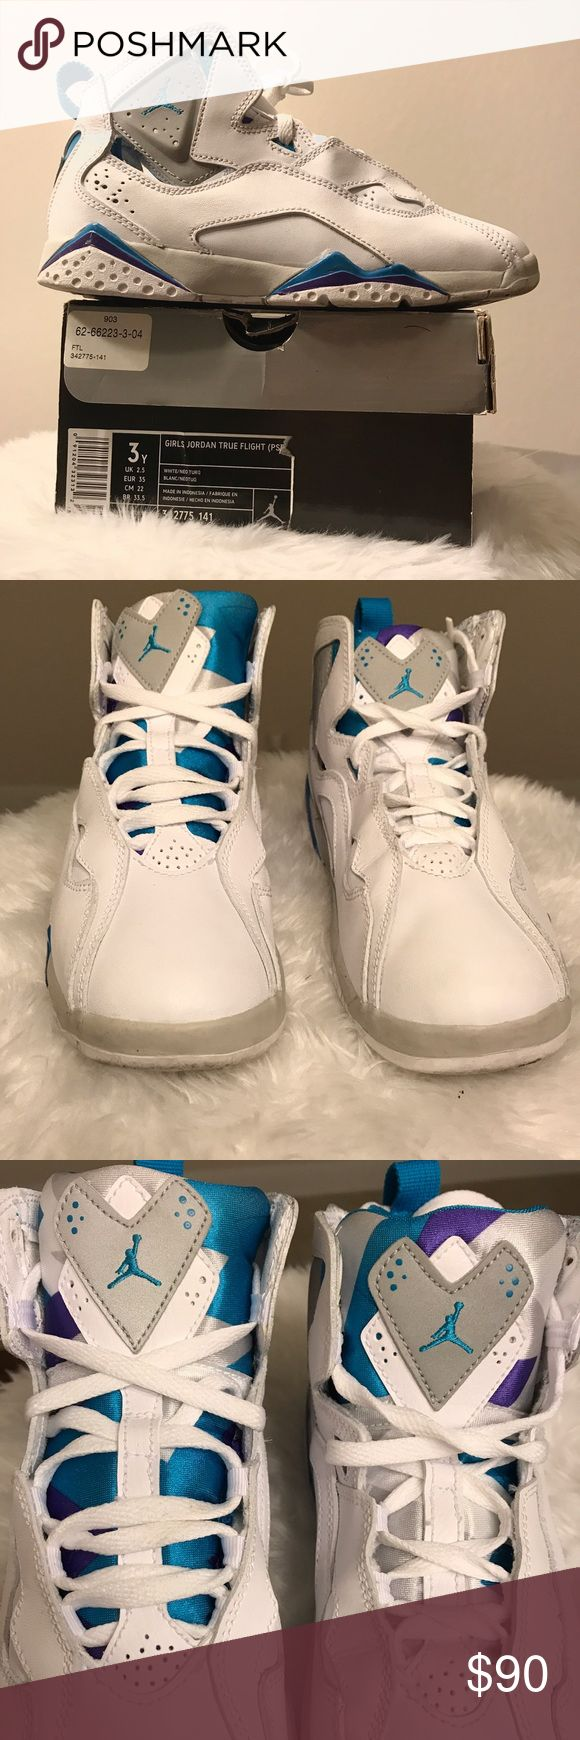 💜 Jordan True Flight 💙 Air Jordan True Flight White/Neo Turquoise 🚺 Youth Size 3 / Great condition! Used twice & have been stored for years. Hard to find! Jordan Shoes